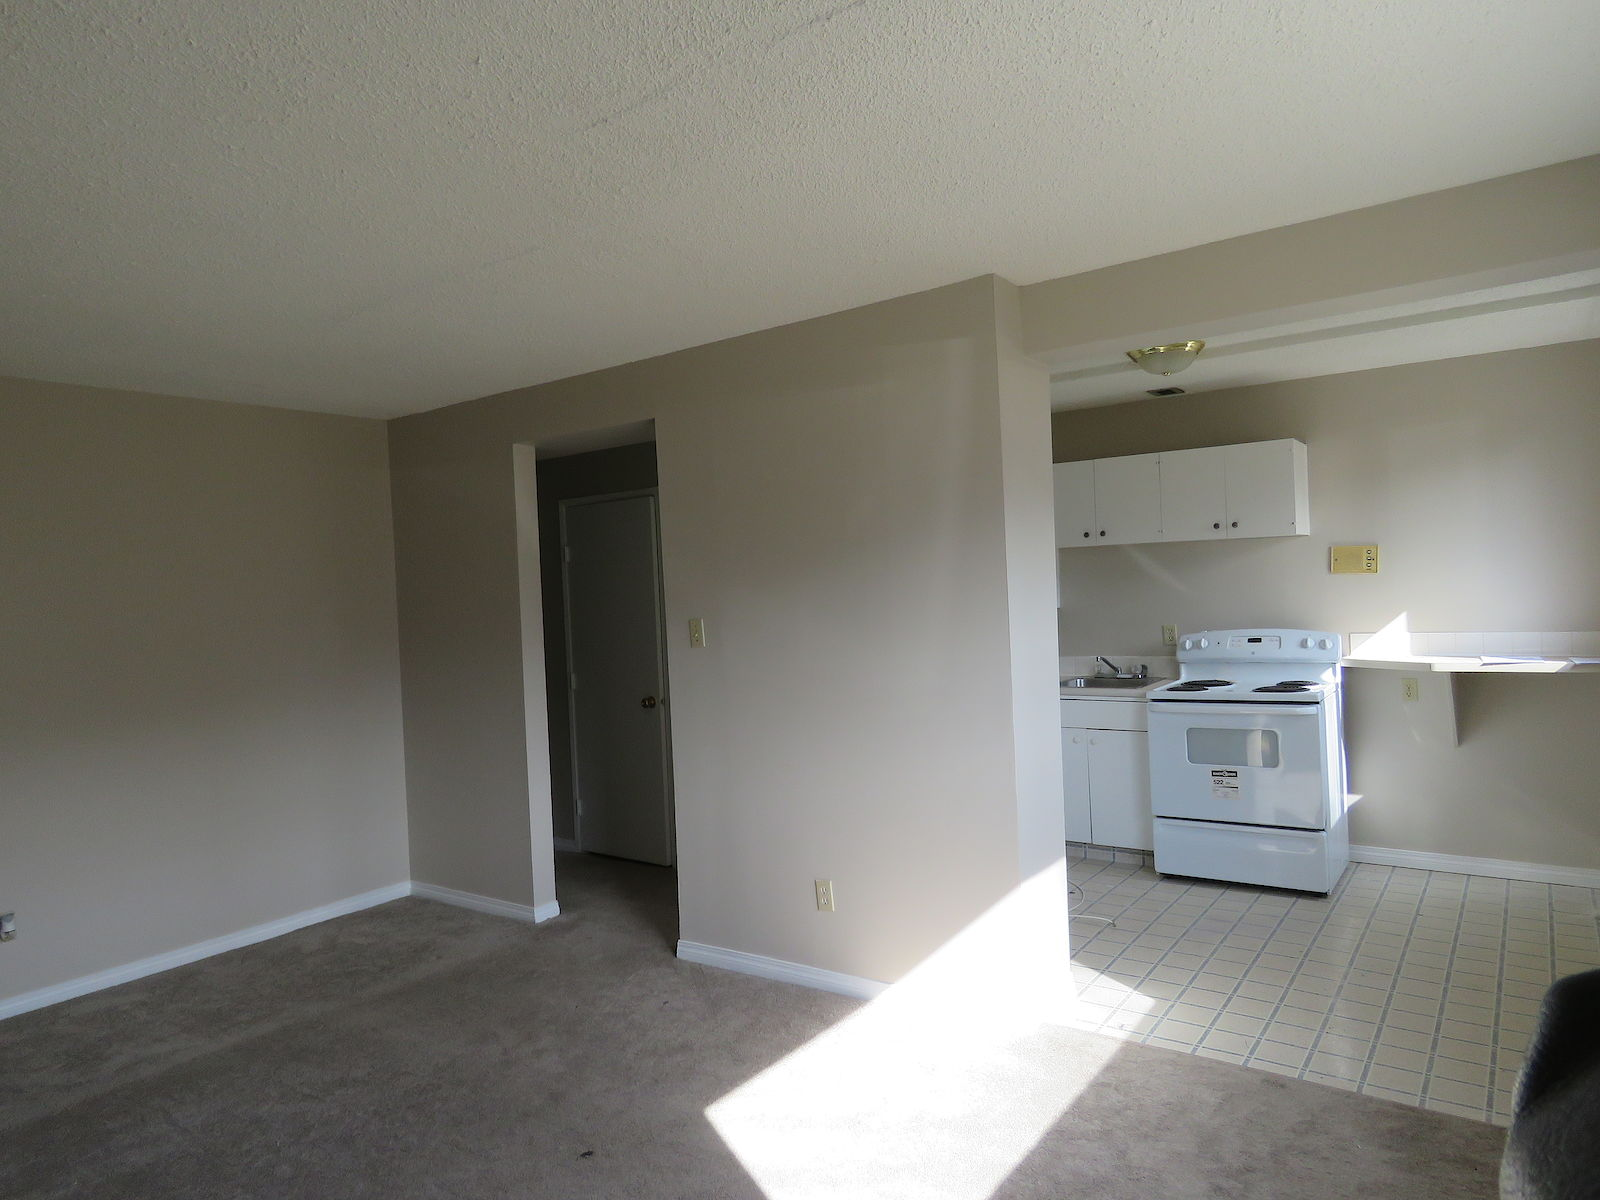 Edmonton Apartment For Rent Queen Mary Park Central 1 Bedroom Apartment Id 273098